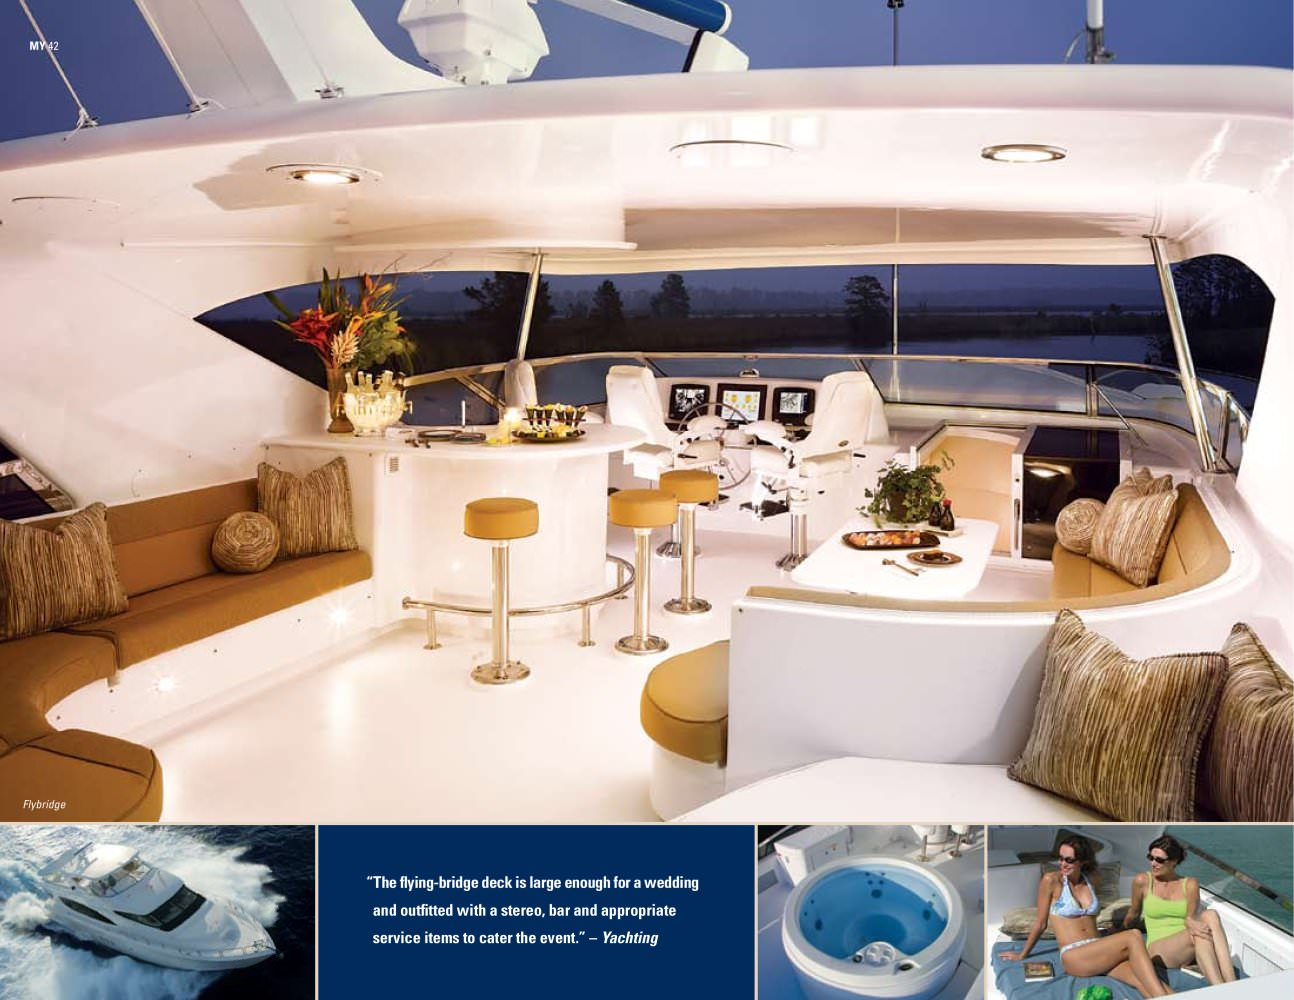 See other catalogues for Hatteras Yachts. You may also be interested in